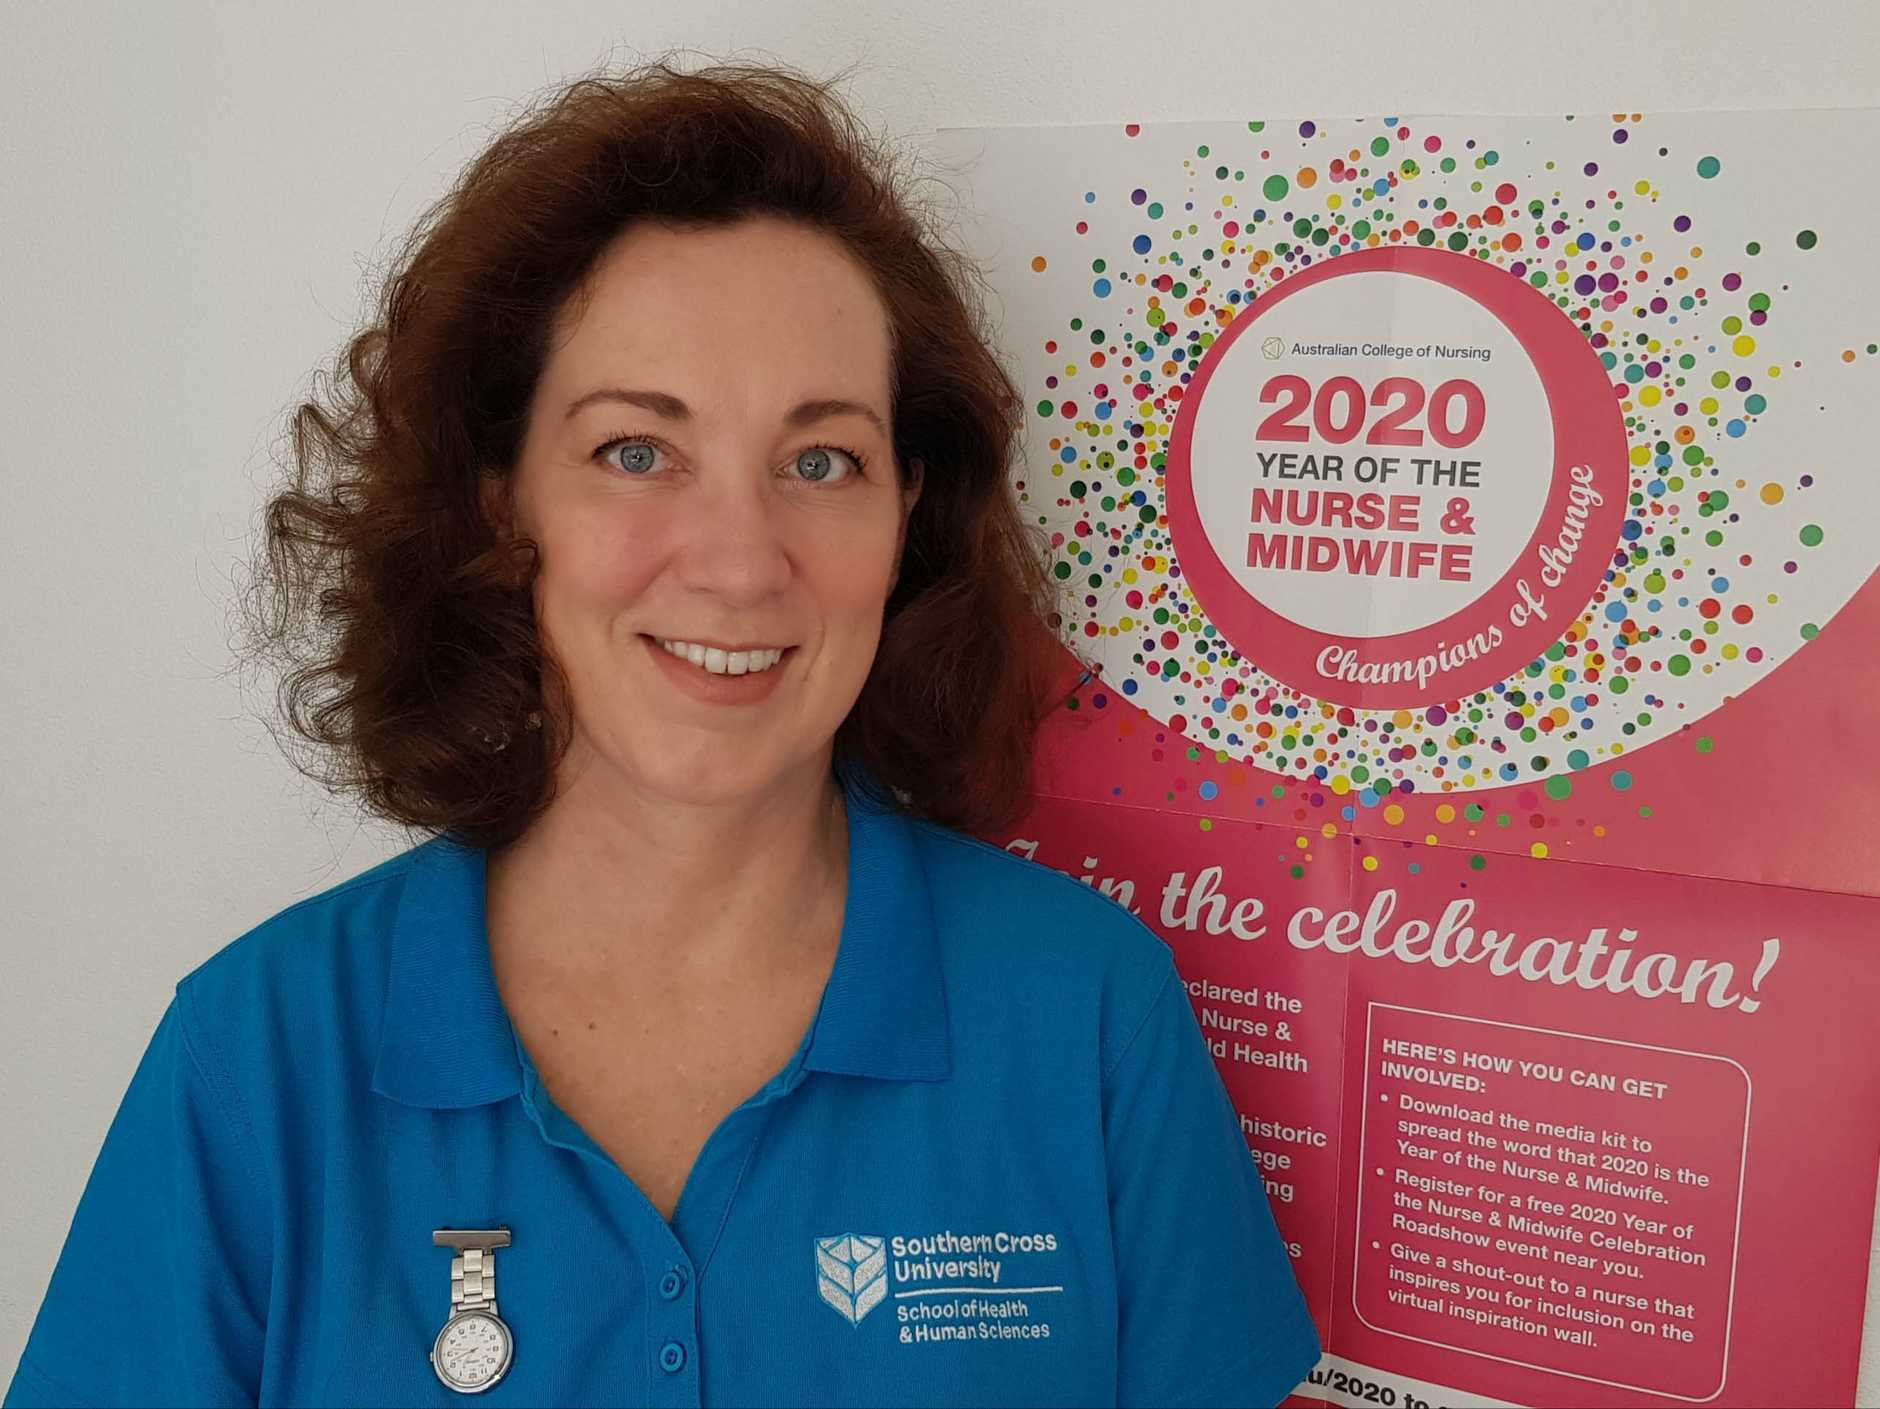 After a varied professional career Kaarin Goeldner has made the move into nursing.